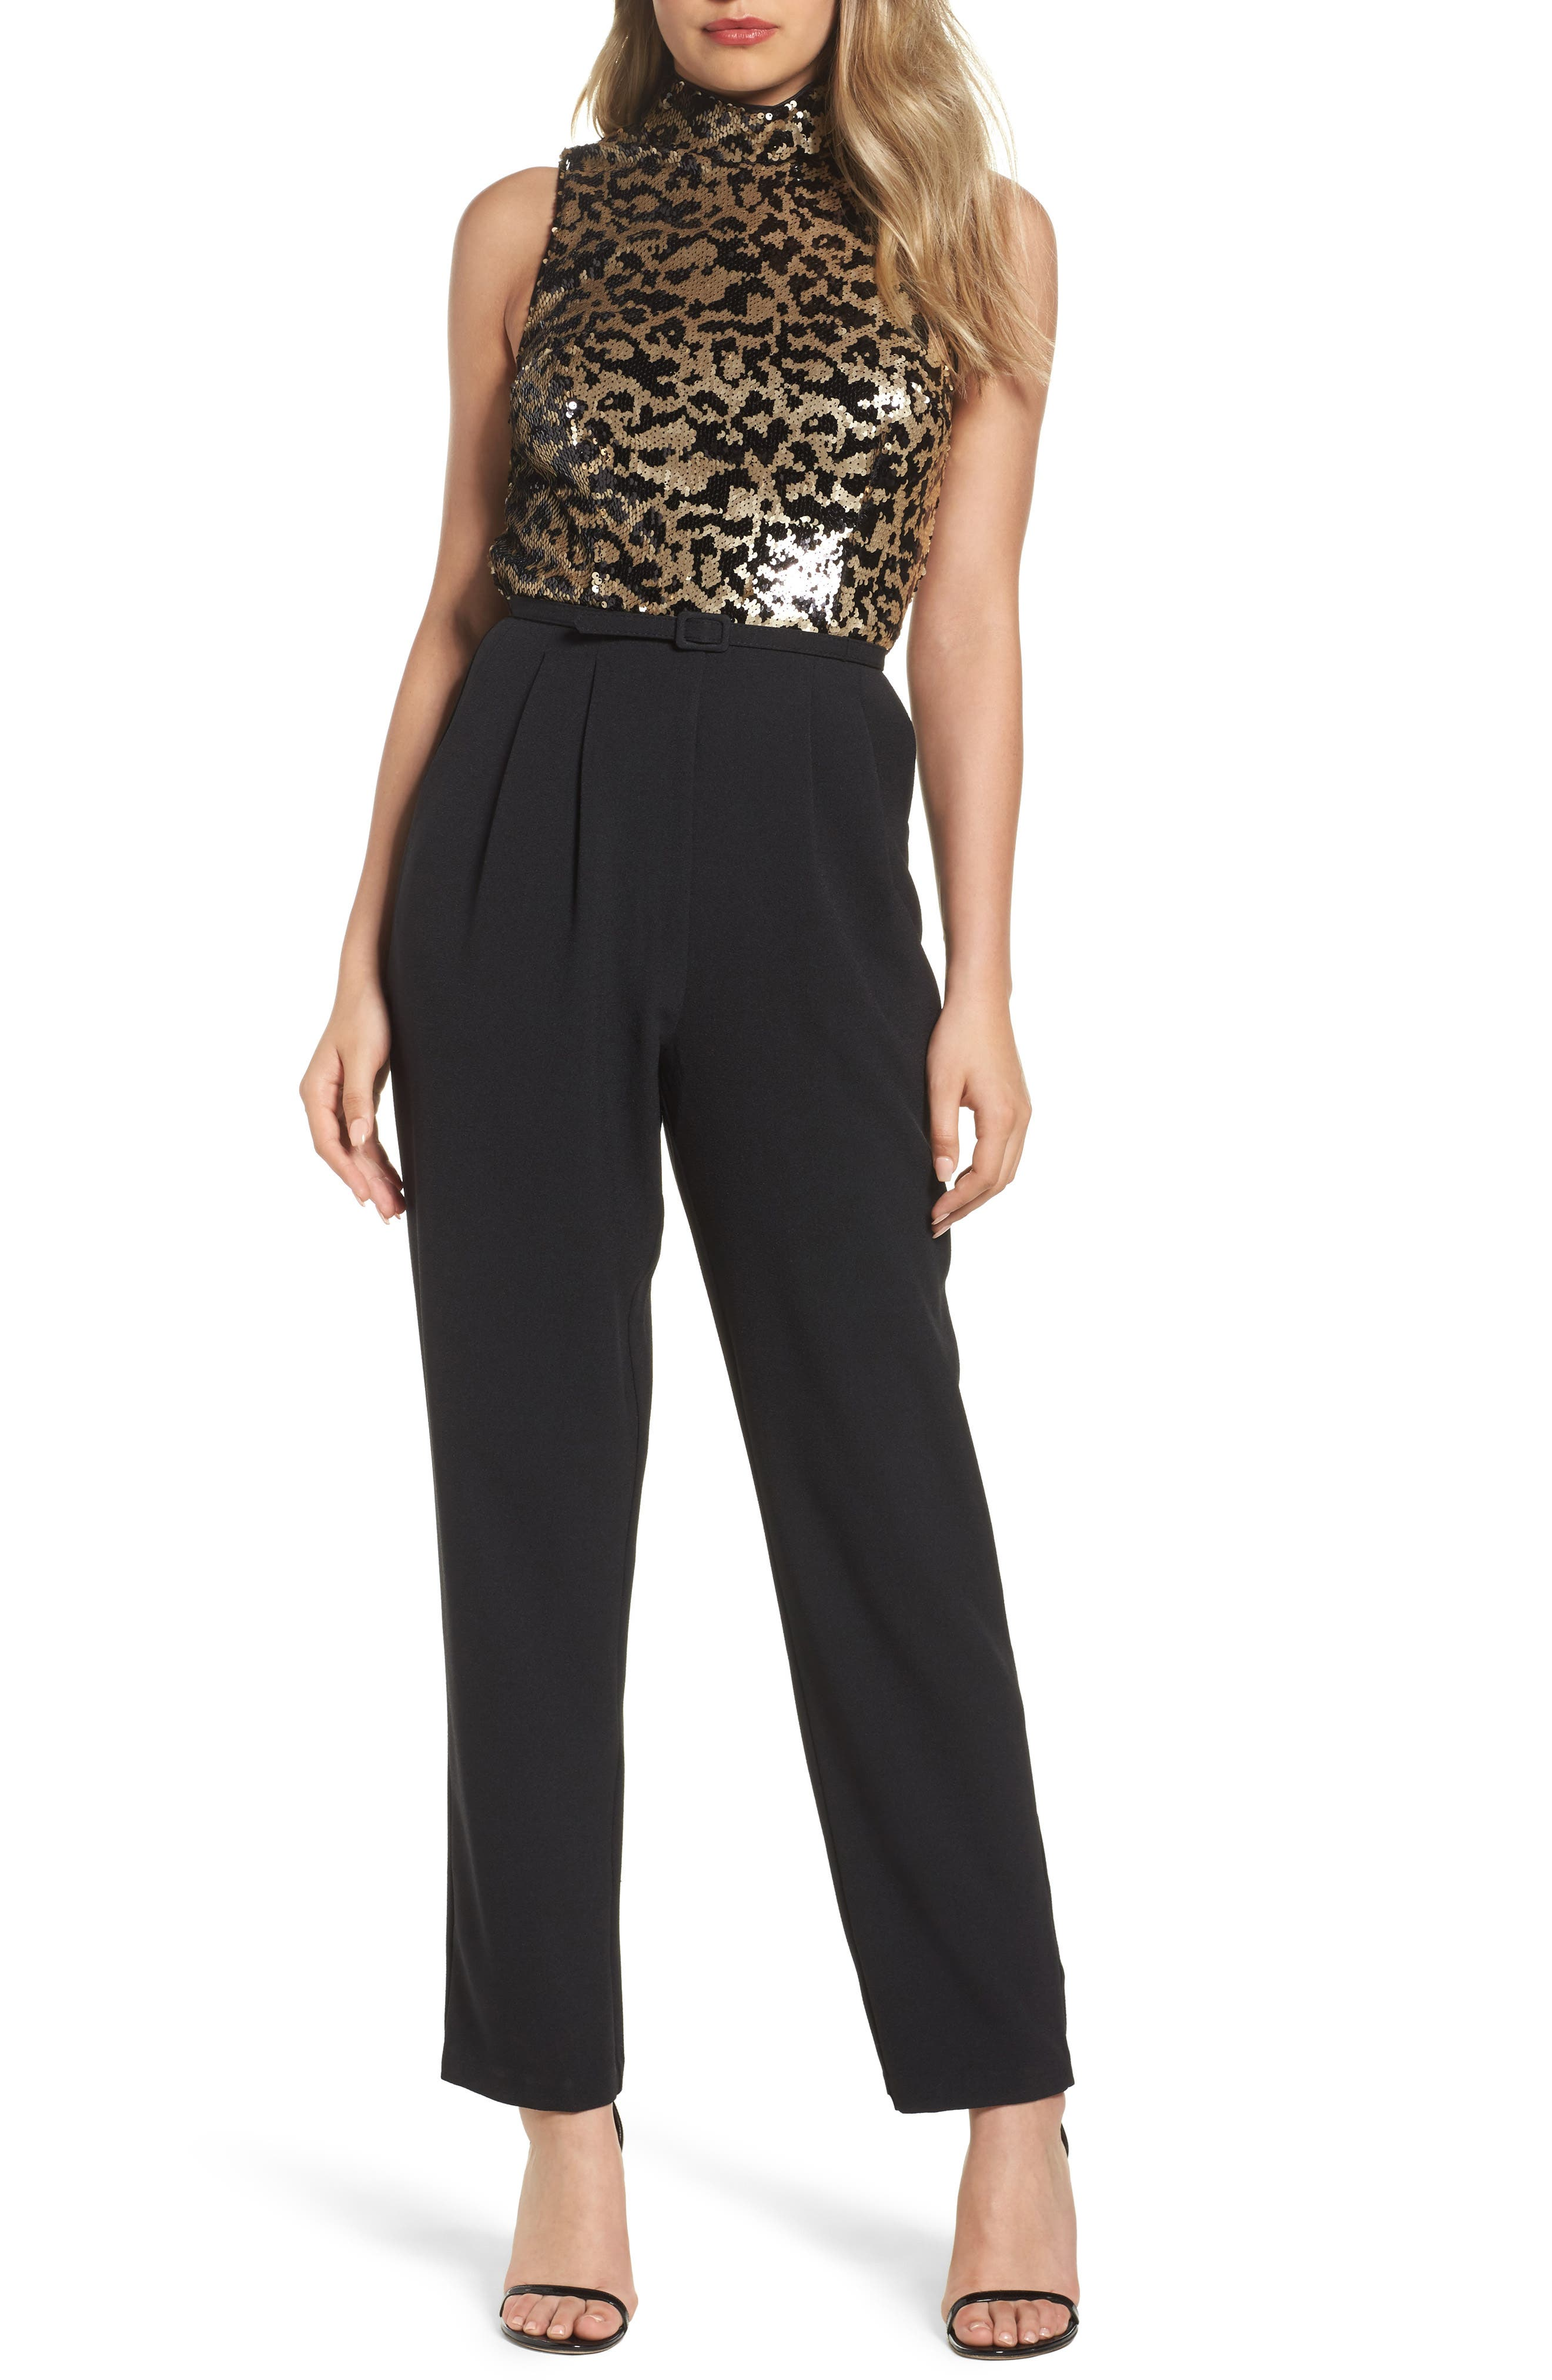 Sequin Leopard Bodice Belted Jumpsuit,                             Main thumbnail 1, color,                             008